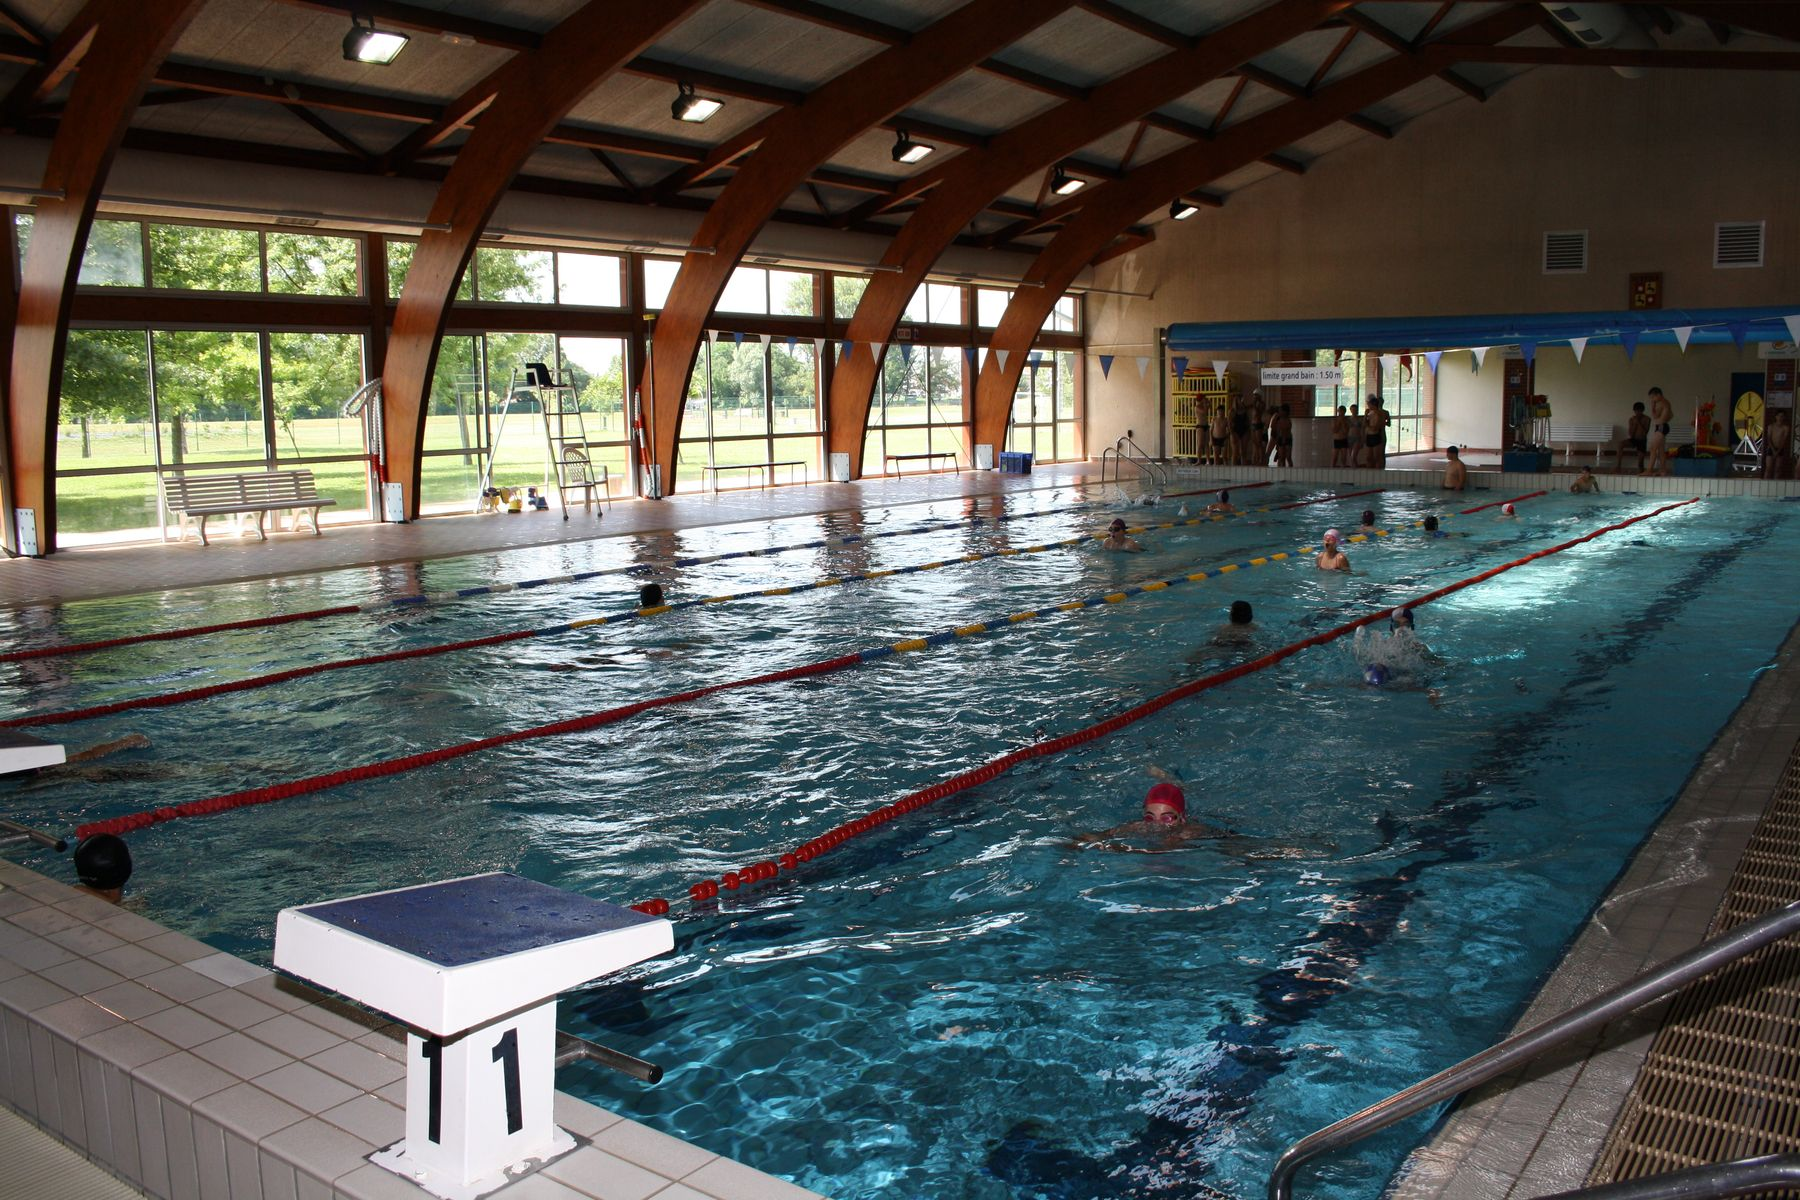 Quipements sportifs aucamville for Piscine saint alban